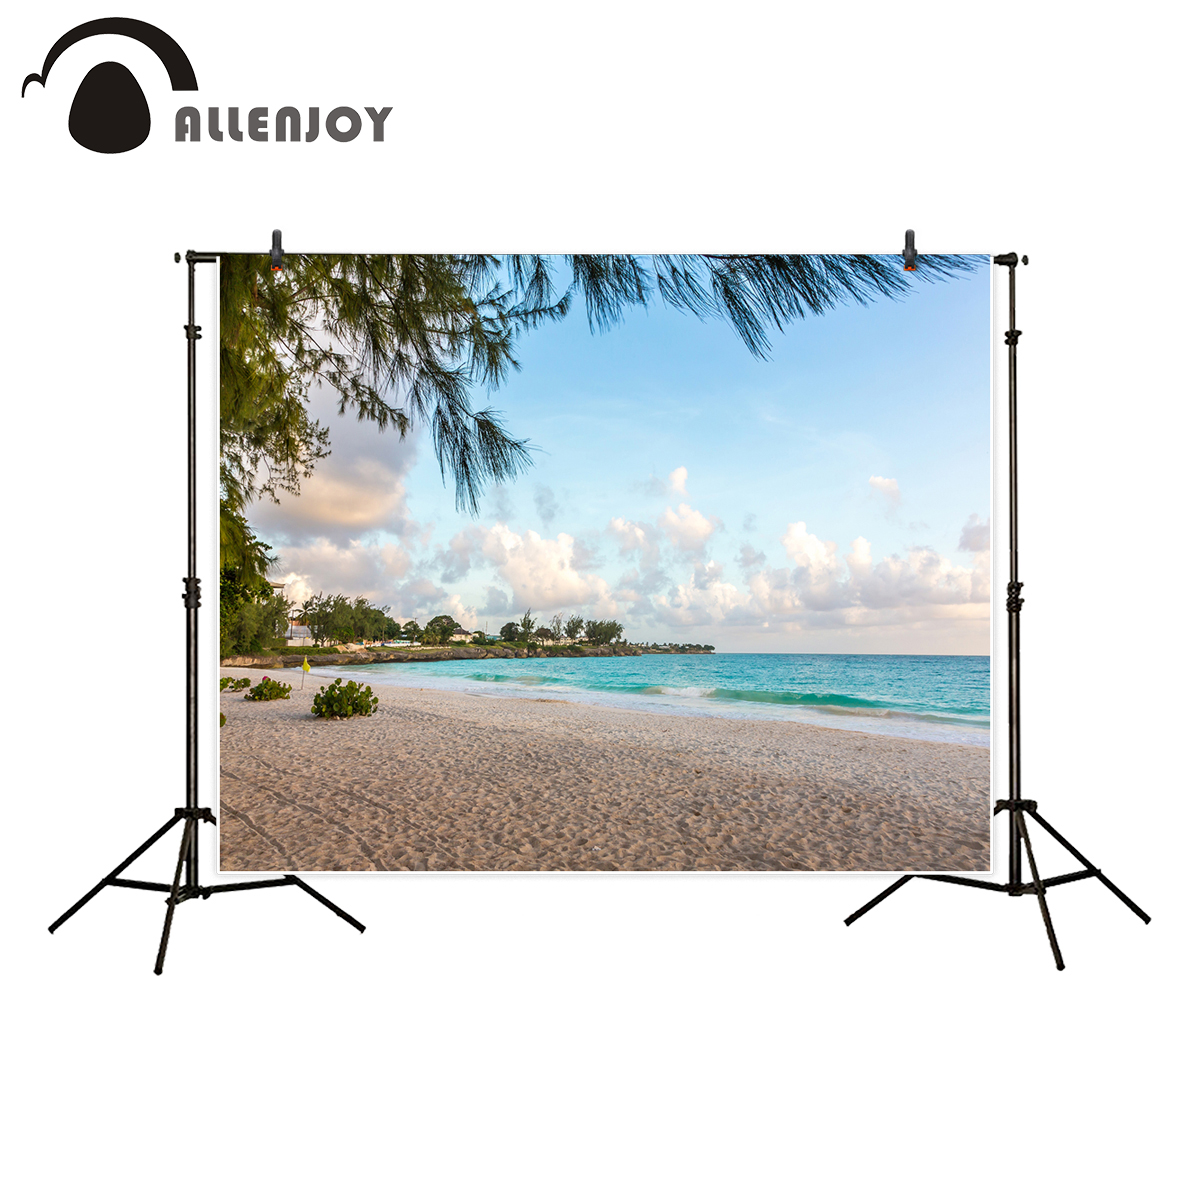 Allenjoy backgrounds for photography studio beautiful tropical island beach blue water clean sand spring backdrop photocall